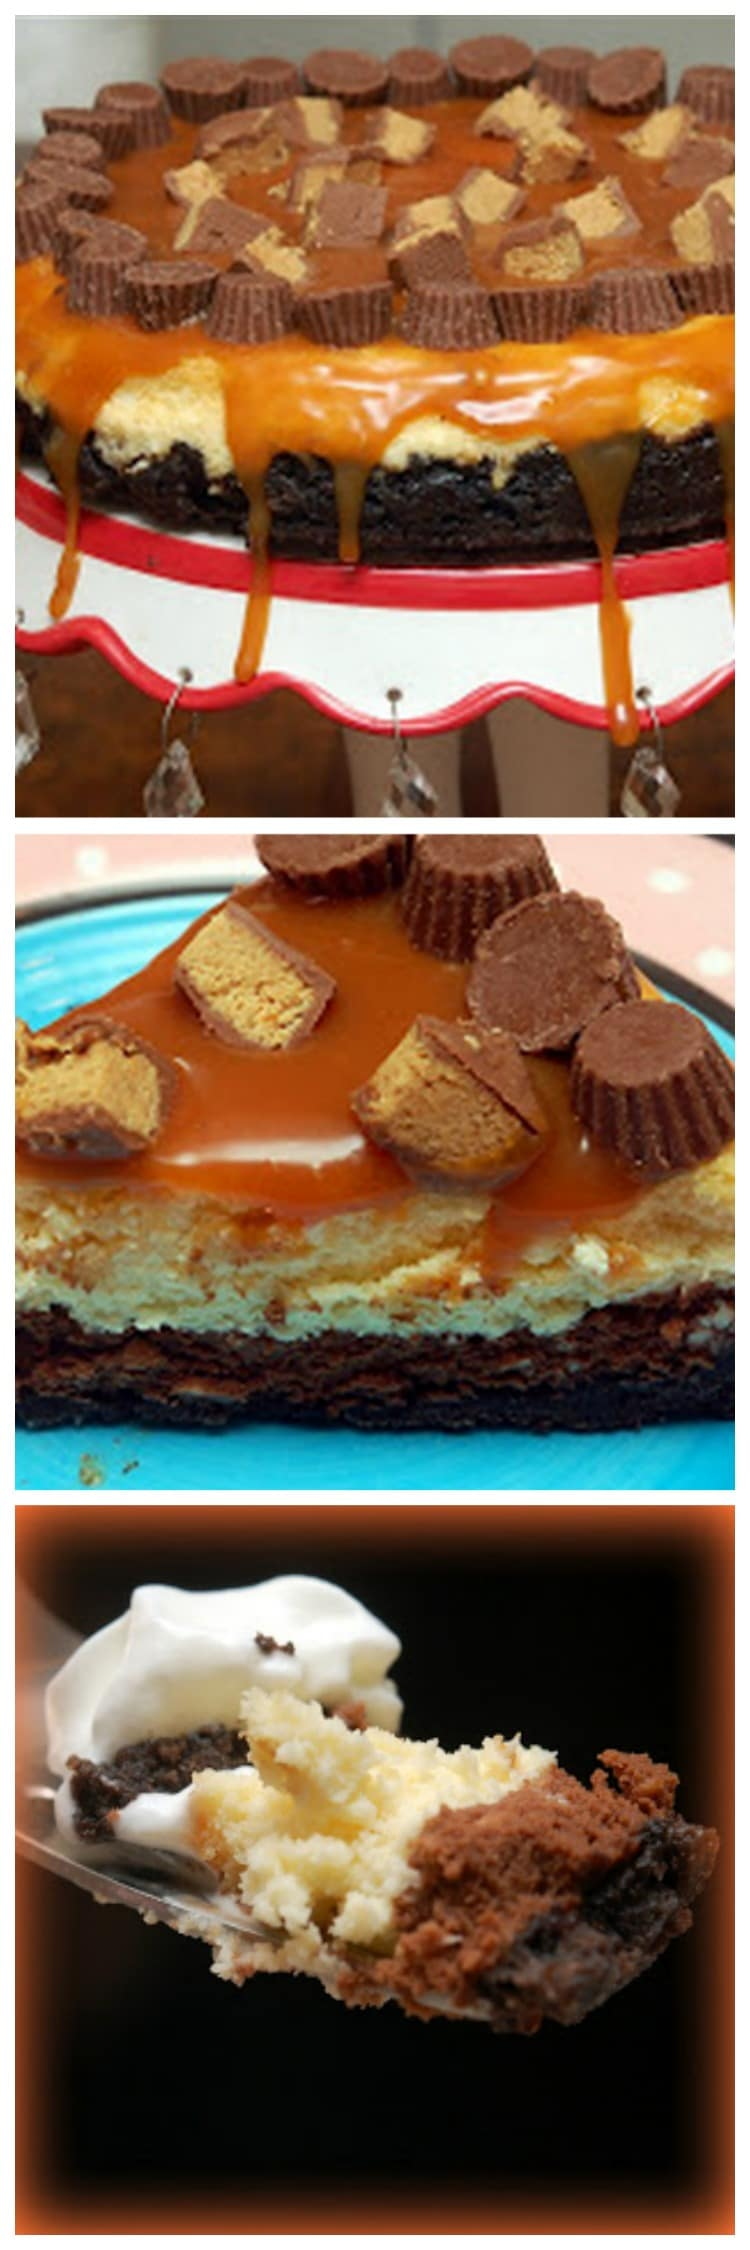 Caramel & Peanut Butter Chocolate Cheesecake